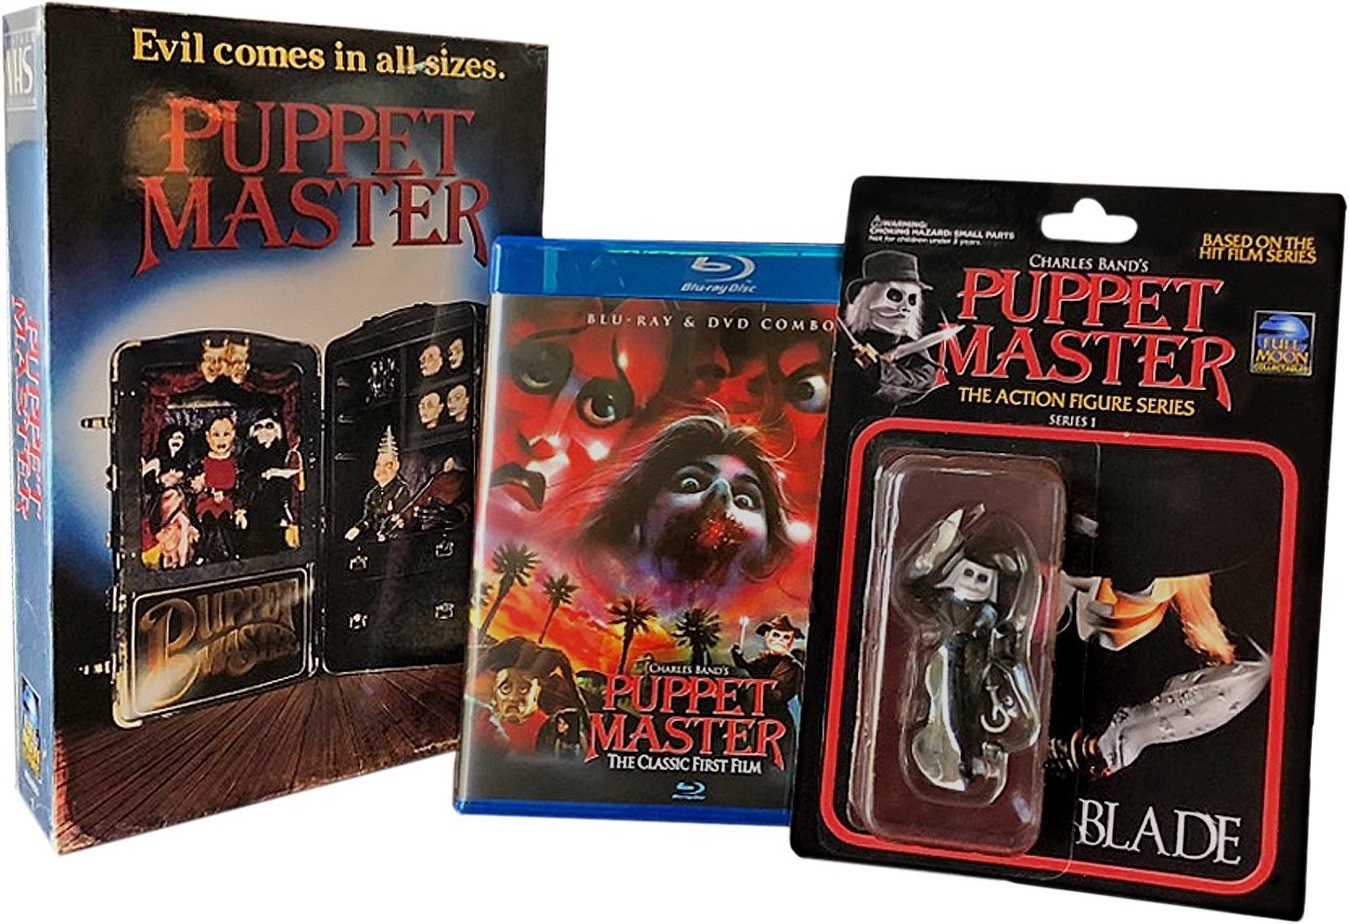 Puppet Master UK Blu-Ray Set